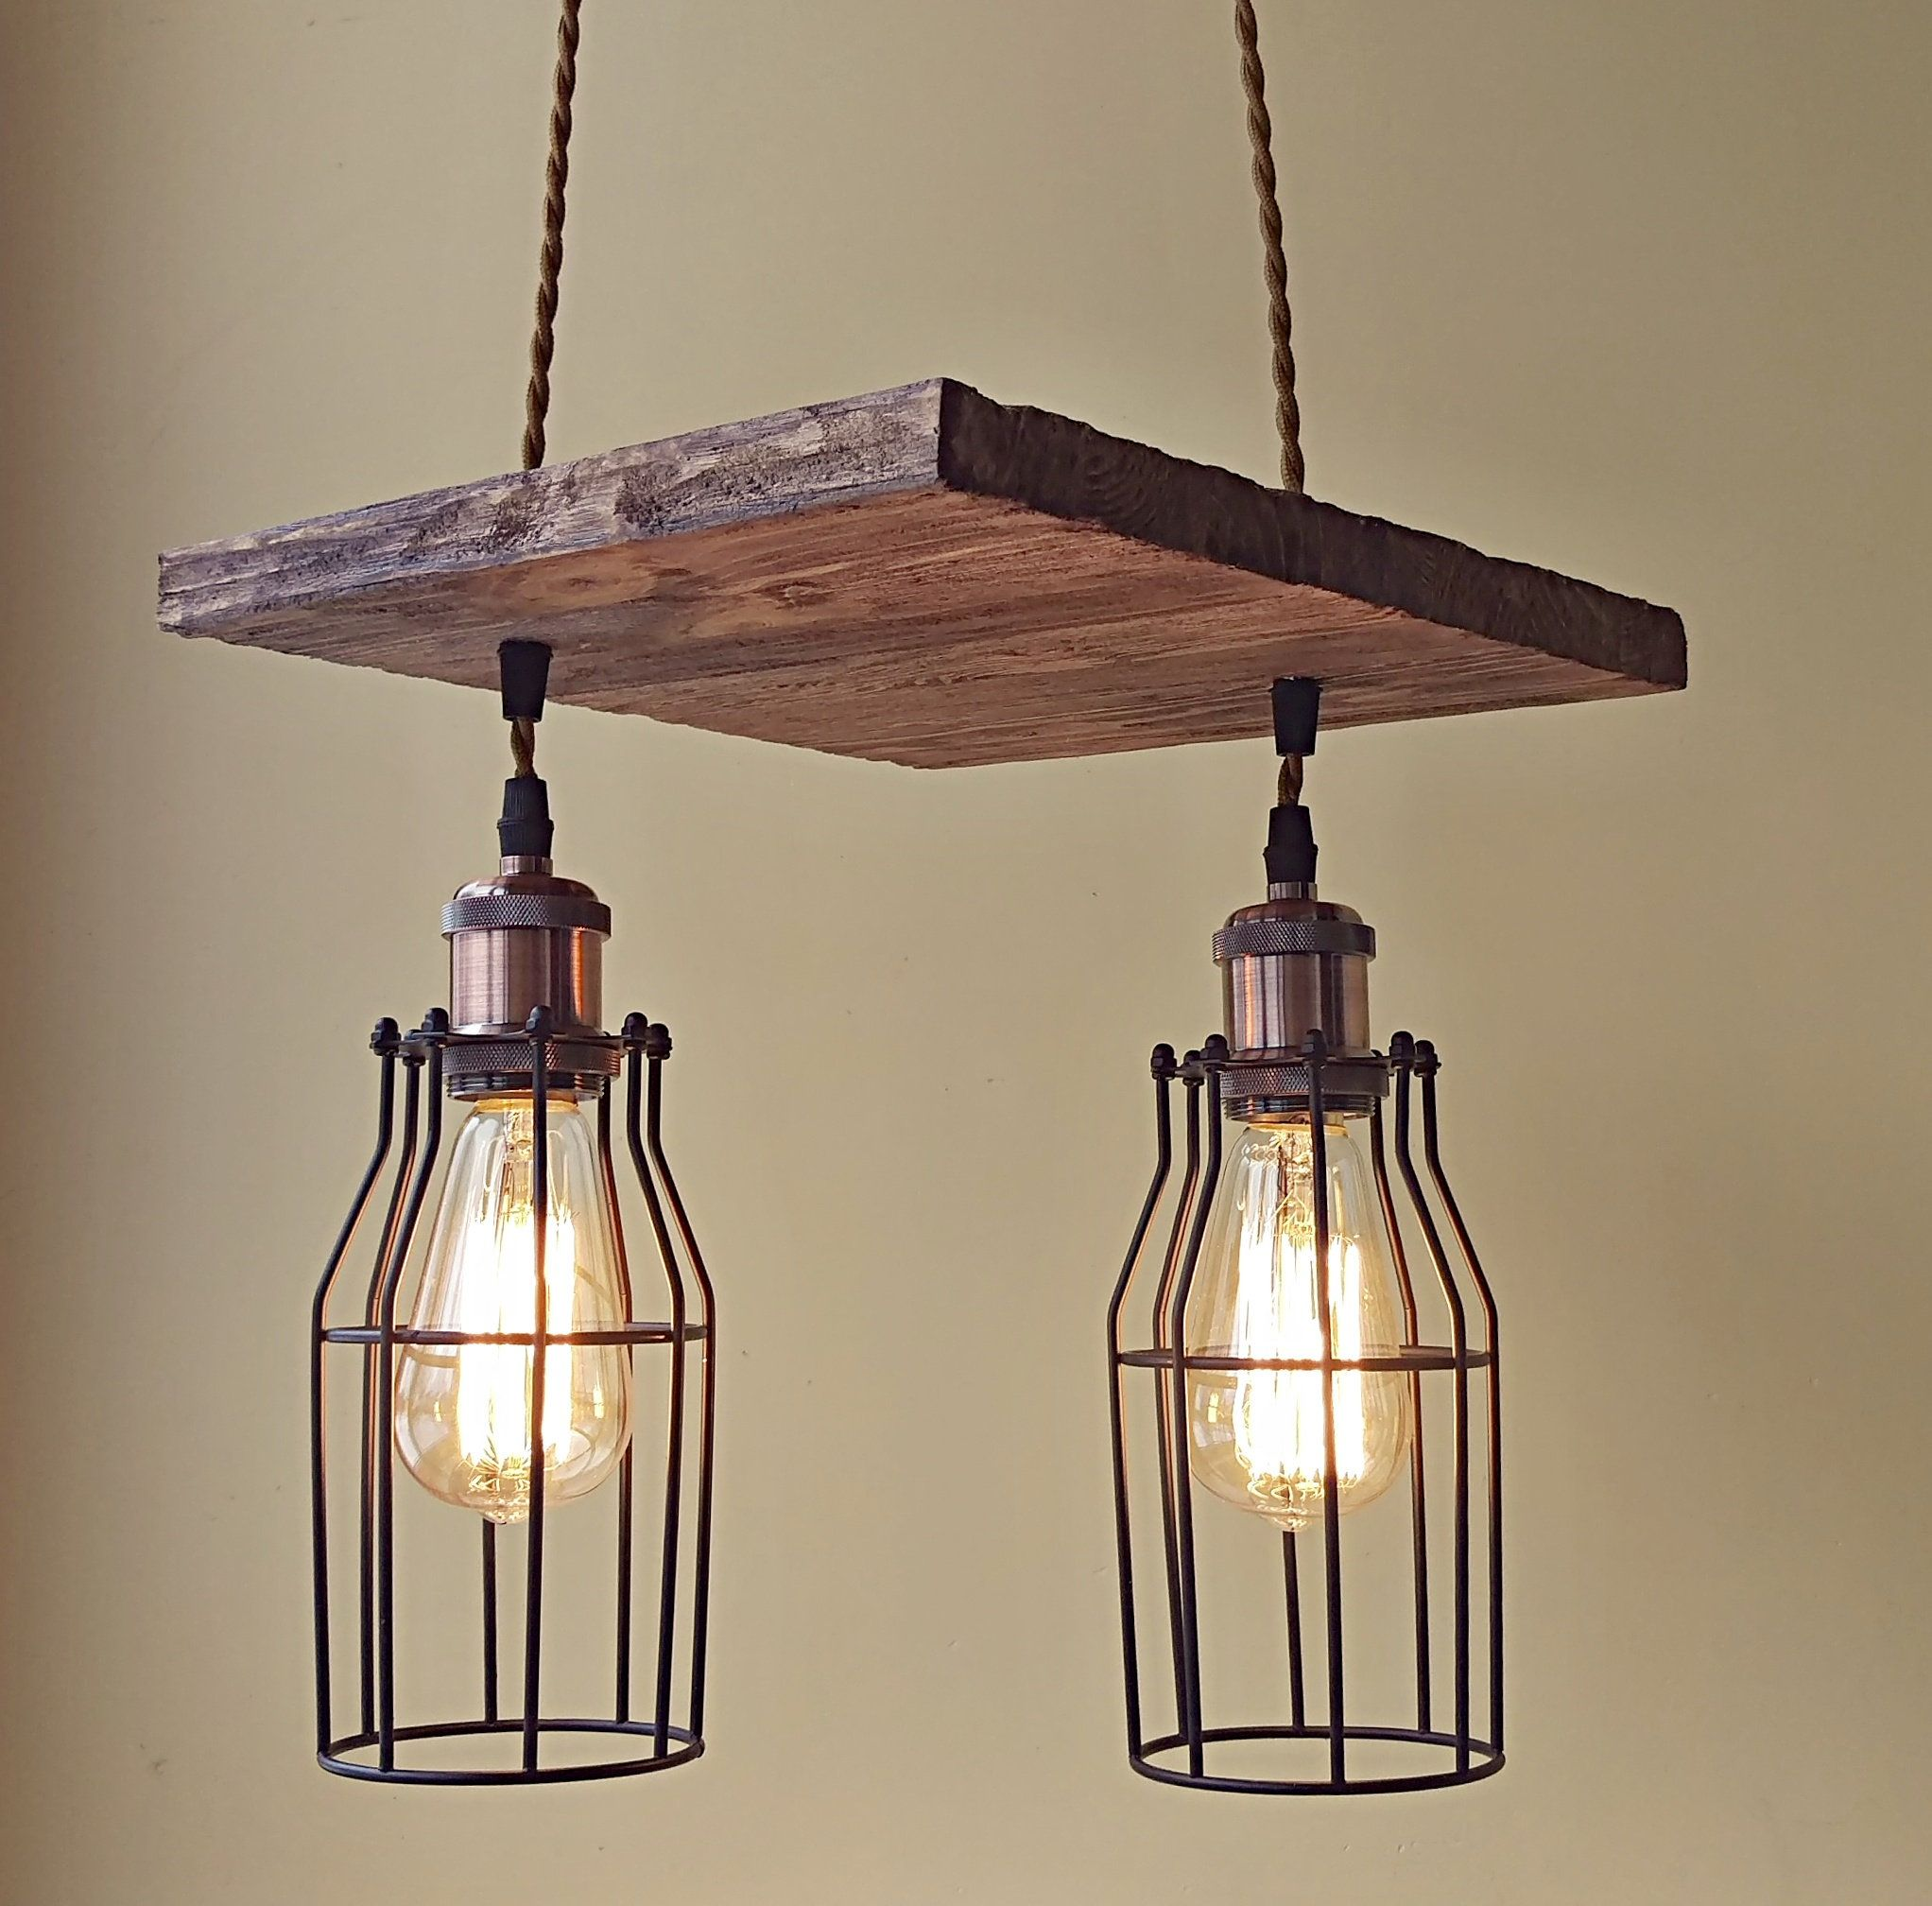 Unique pendant light wood chandelier rustic handmade pendant